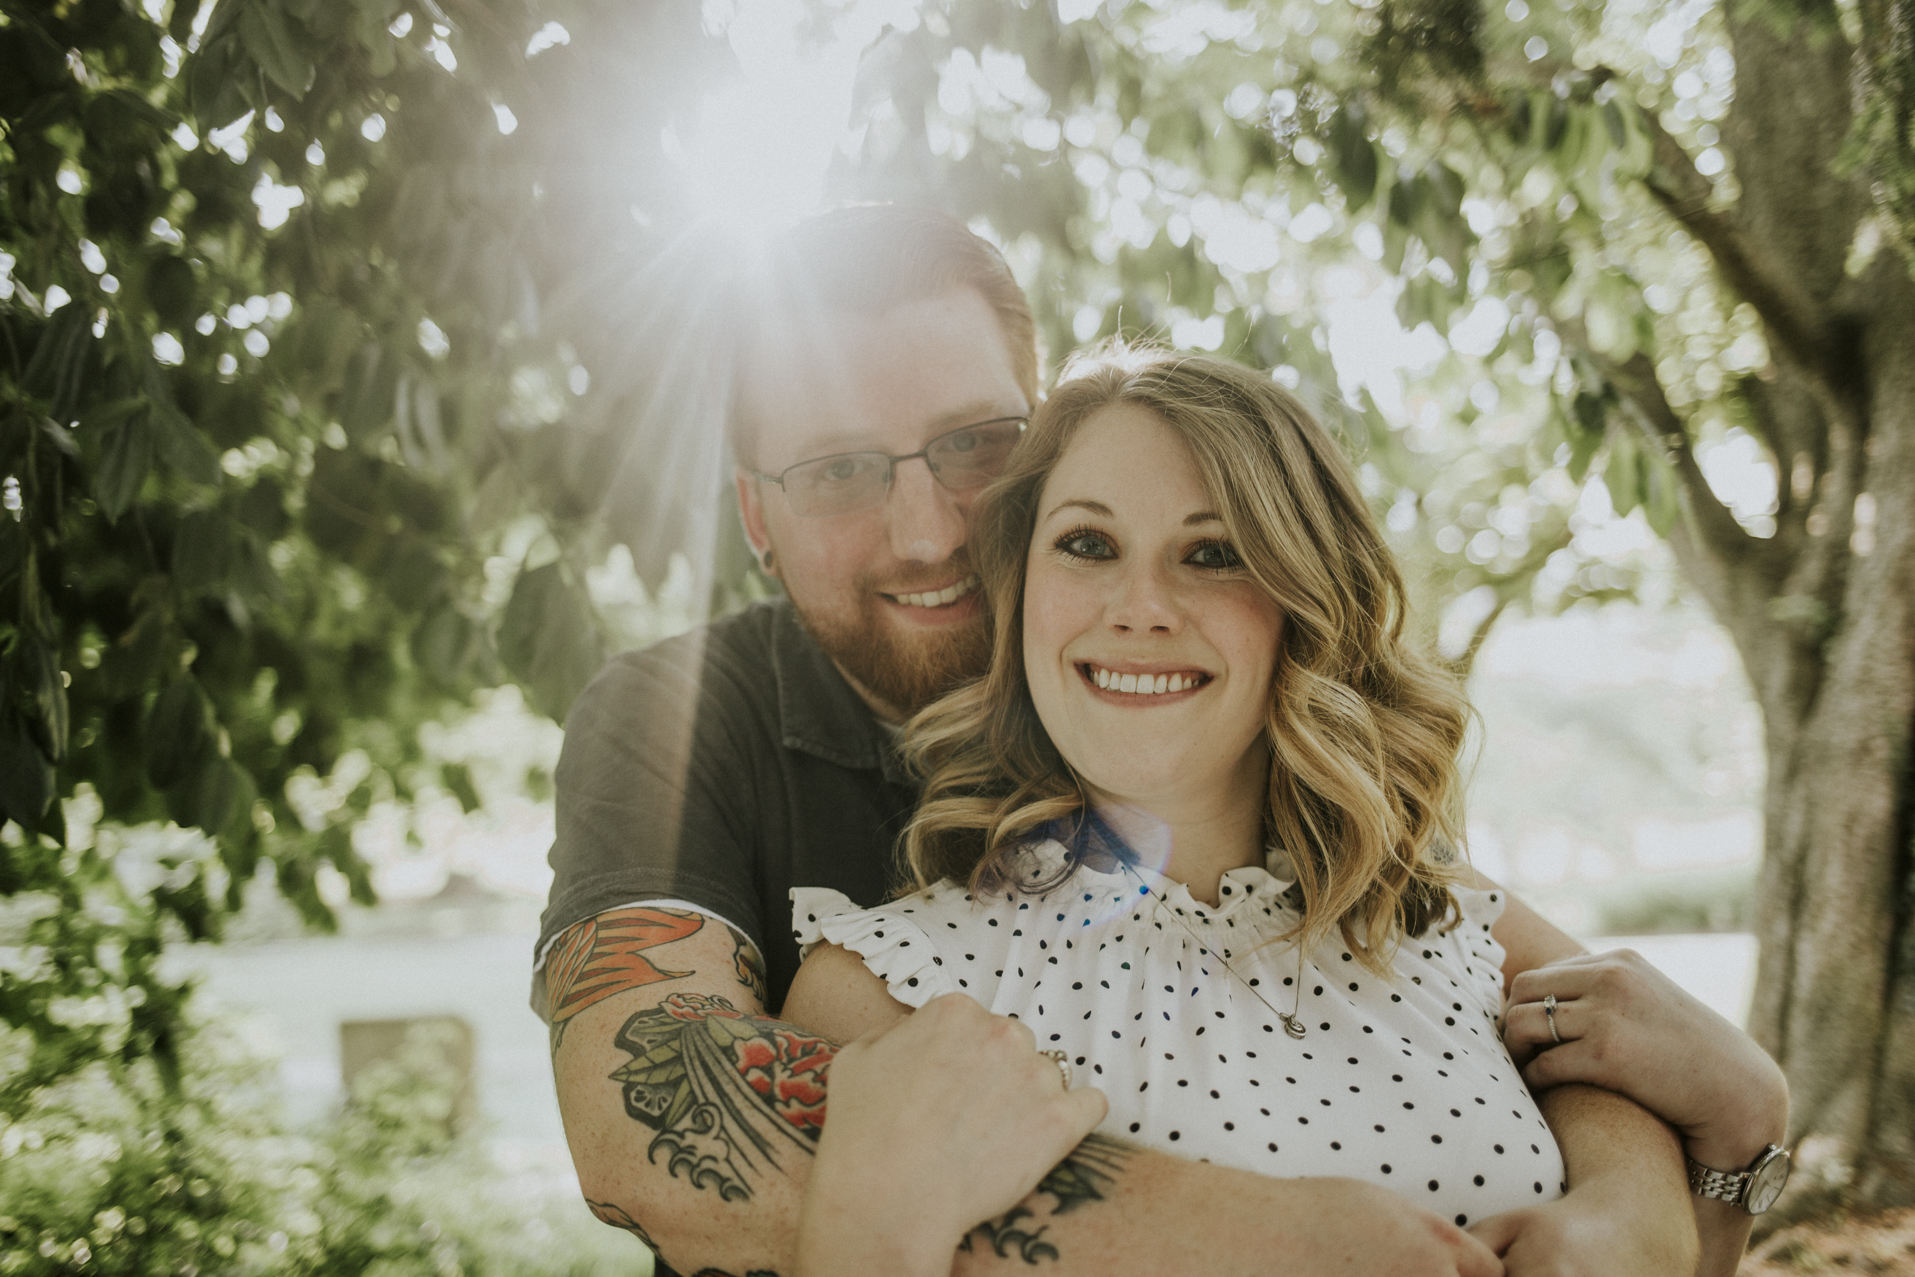 Eden Park Engagement Session Photography Overlooking the Ohio River